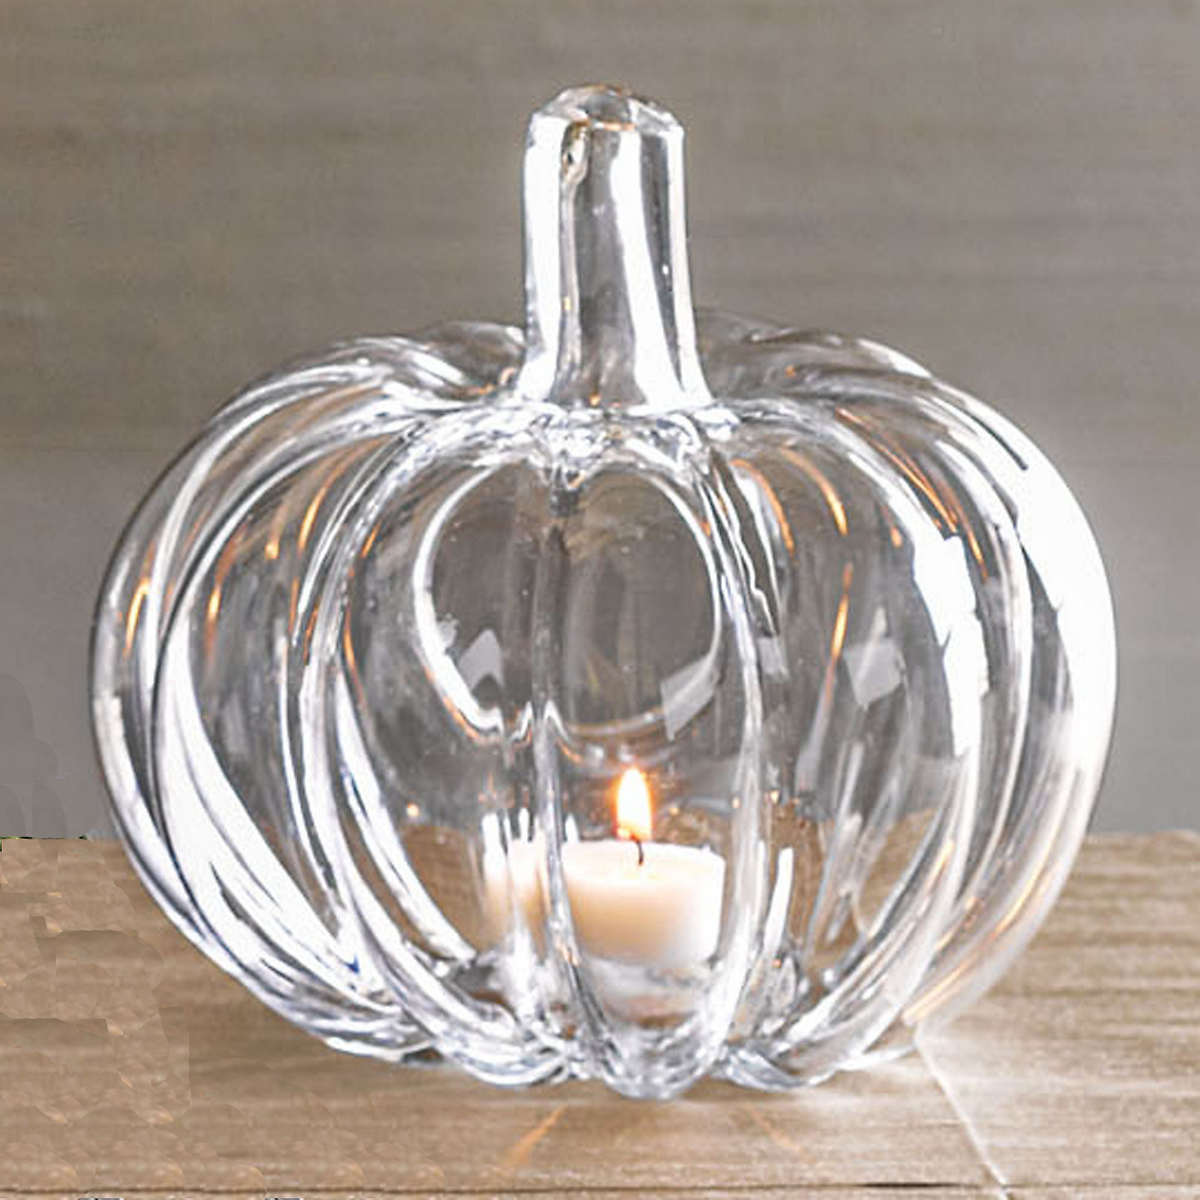 Glass Pumpkin Candleholders, Set Of 4 Small